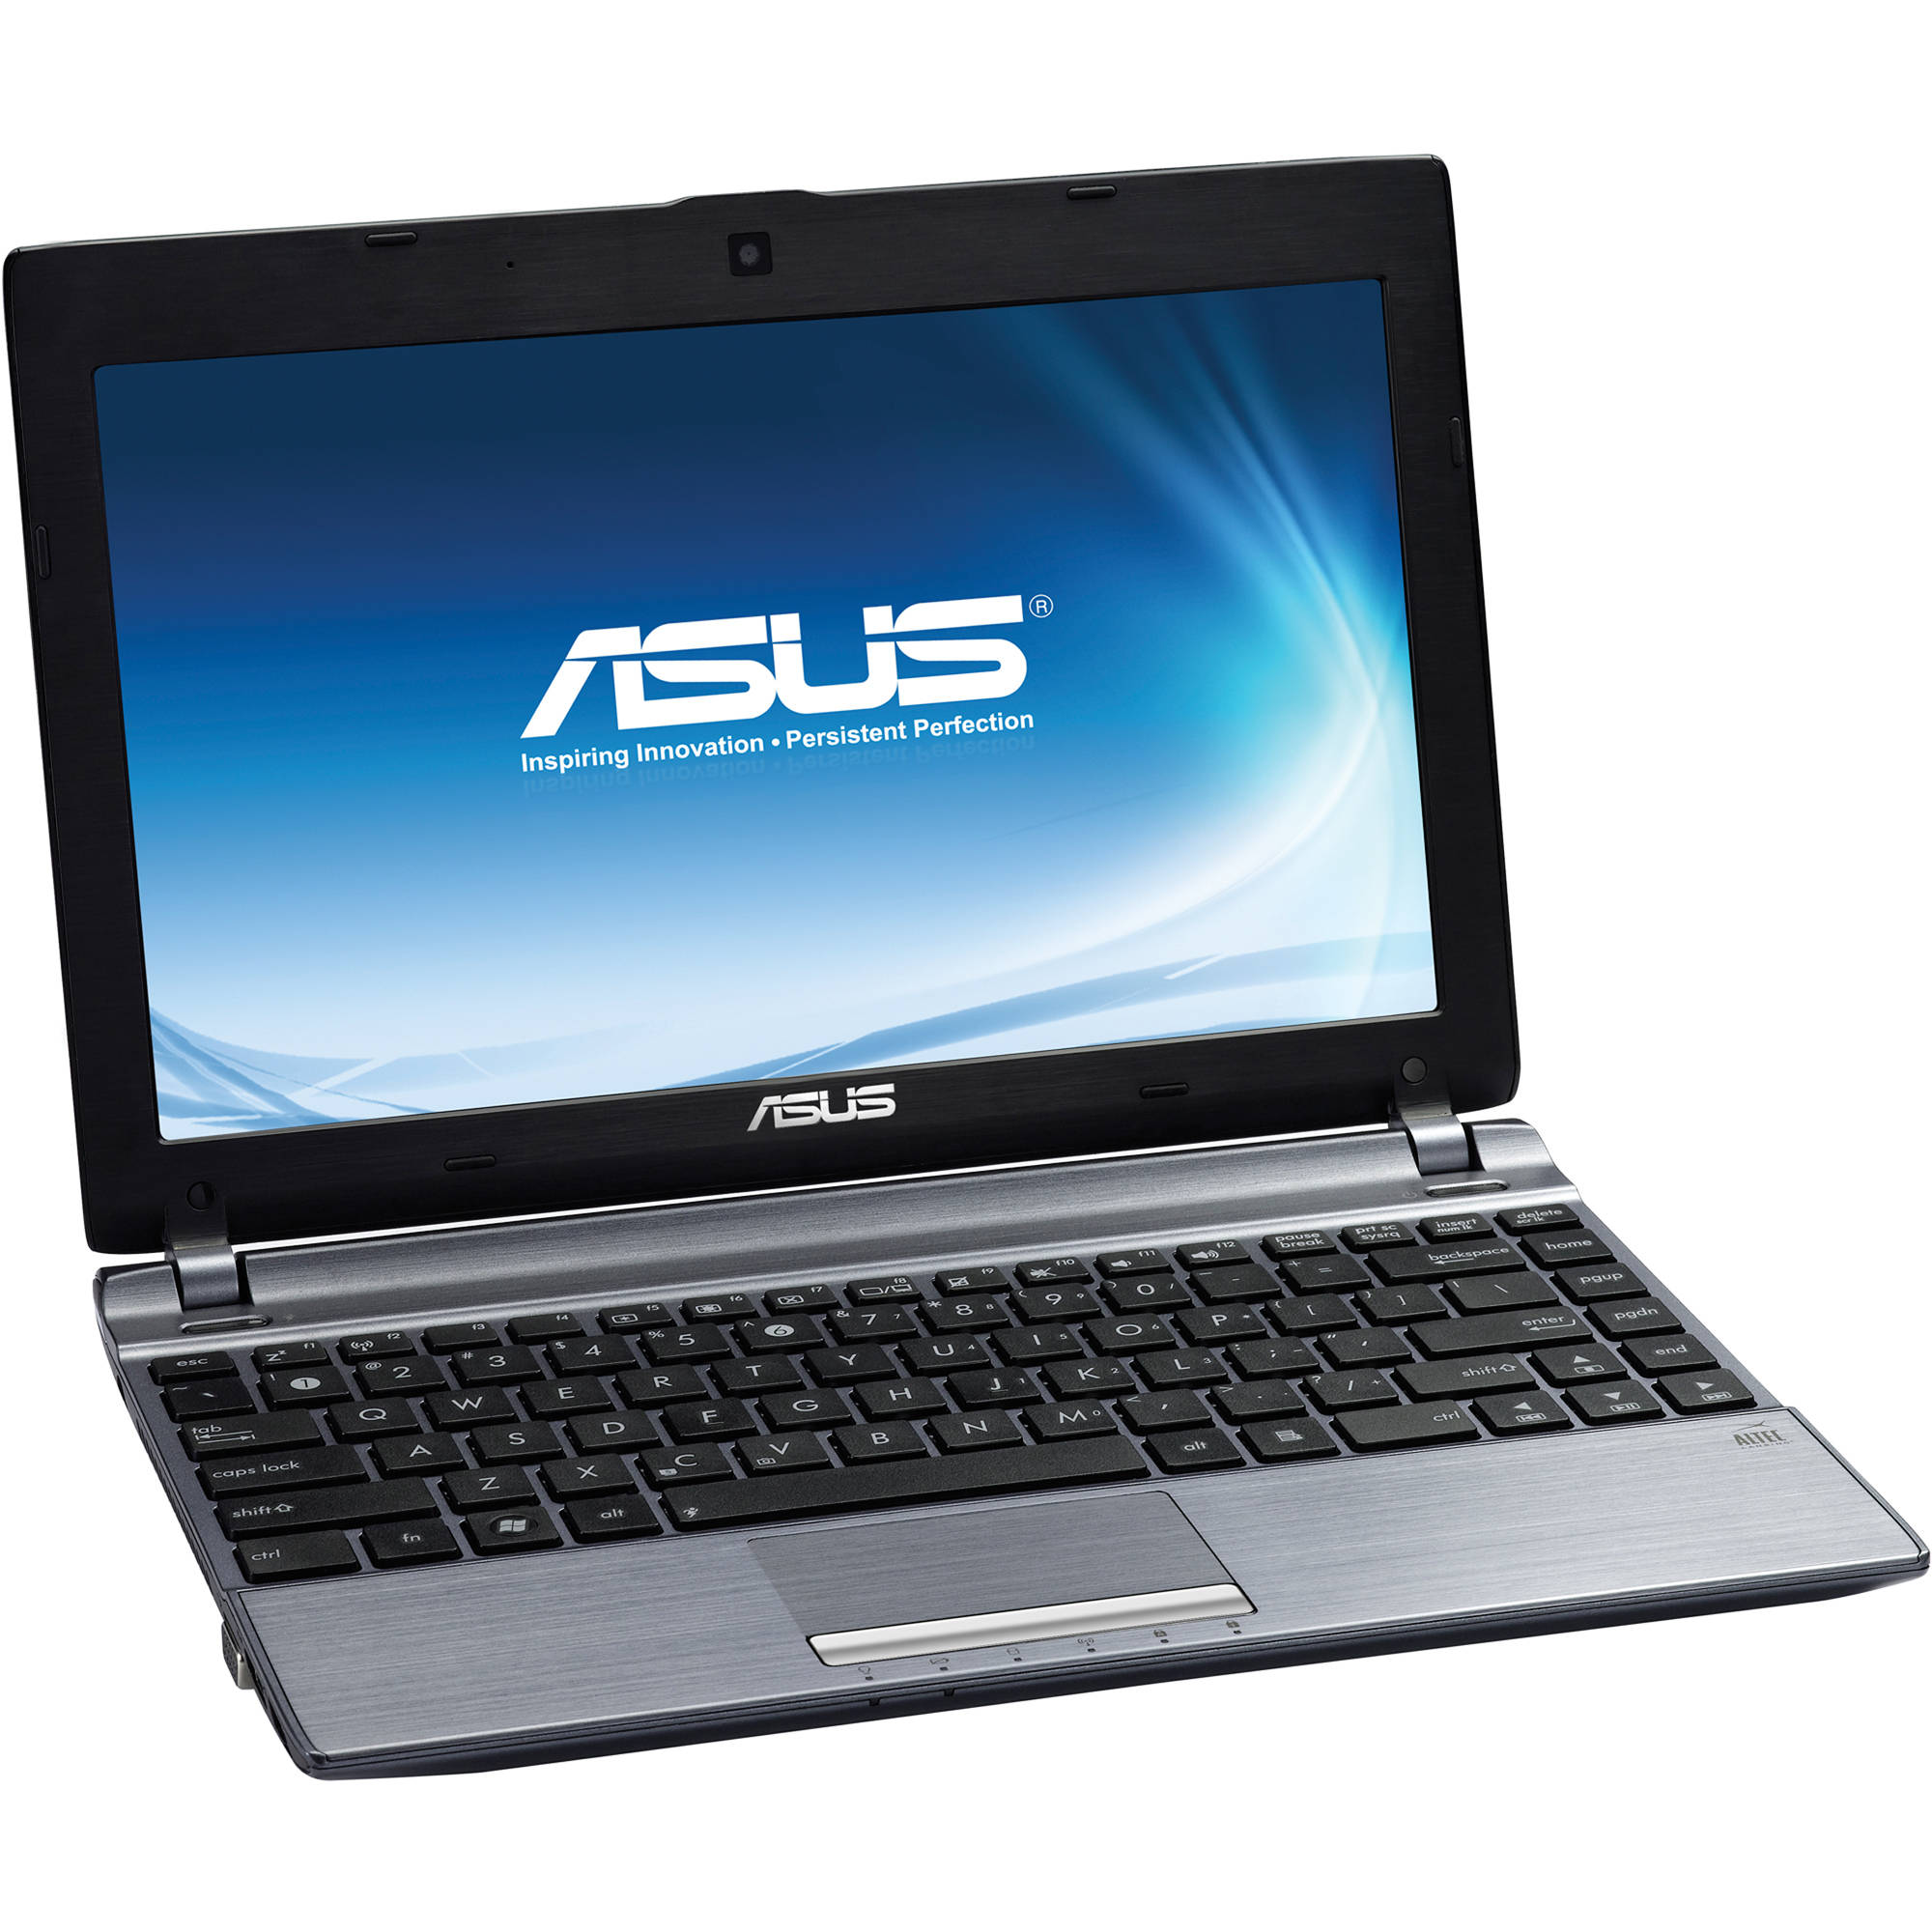 ASUS U24E NOTEBOOK BLUETOOTH DRIVER FOR WINDOWS DOWNLOAD